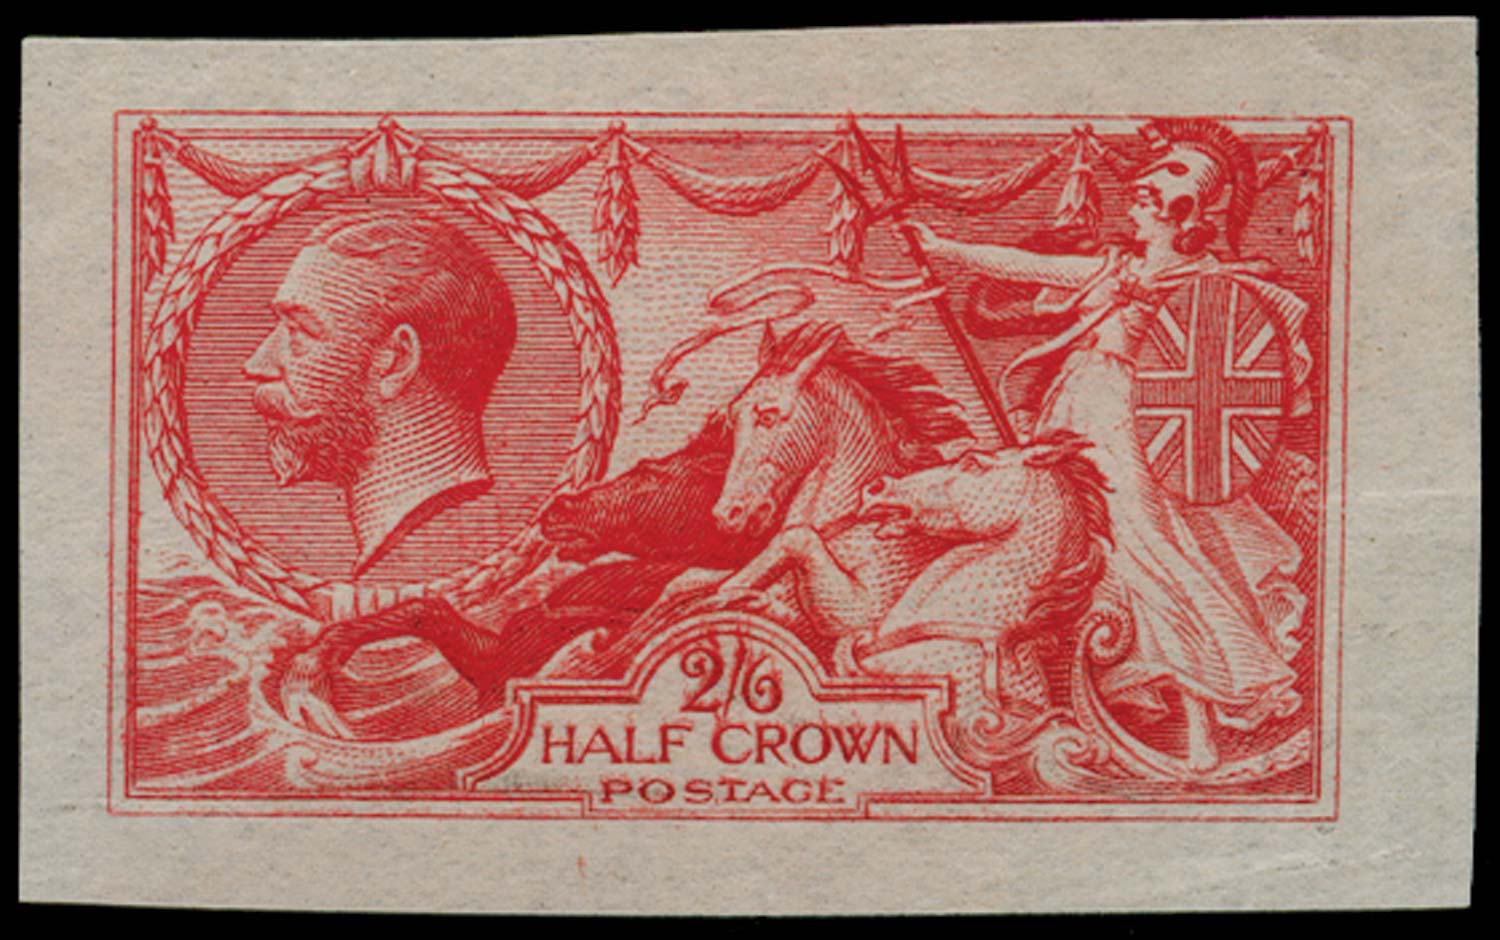 GB 1913  SG399var Plate Proof in red